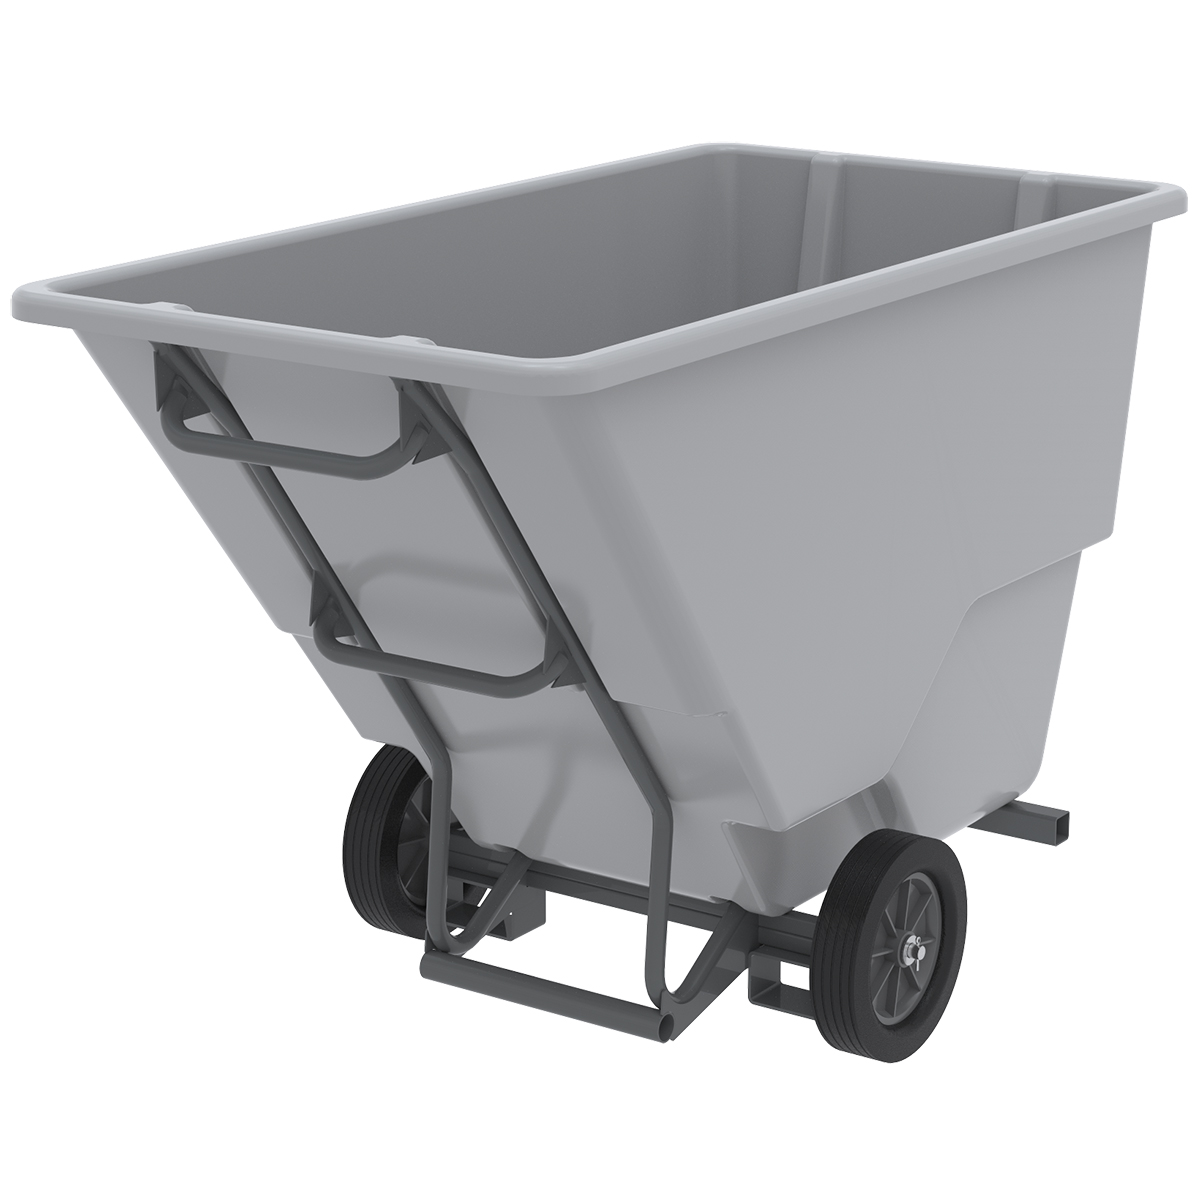 Akro-Tilt Truck w/ Fork Channels Medium-Duty 200 Gal, 33 x 66 x 42, Gray (77410FGREY).  This item sold in carton quantities of 1.